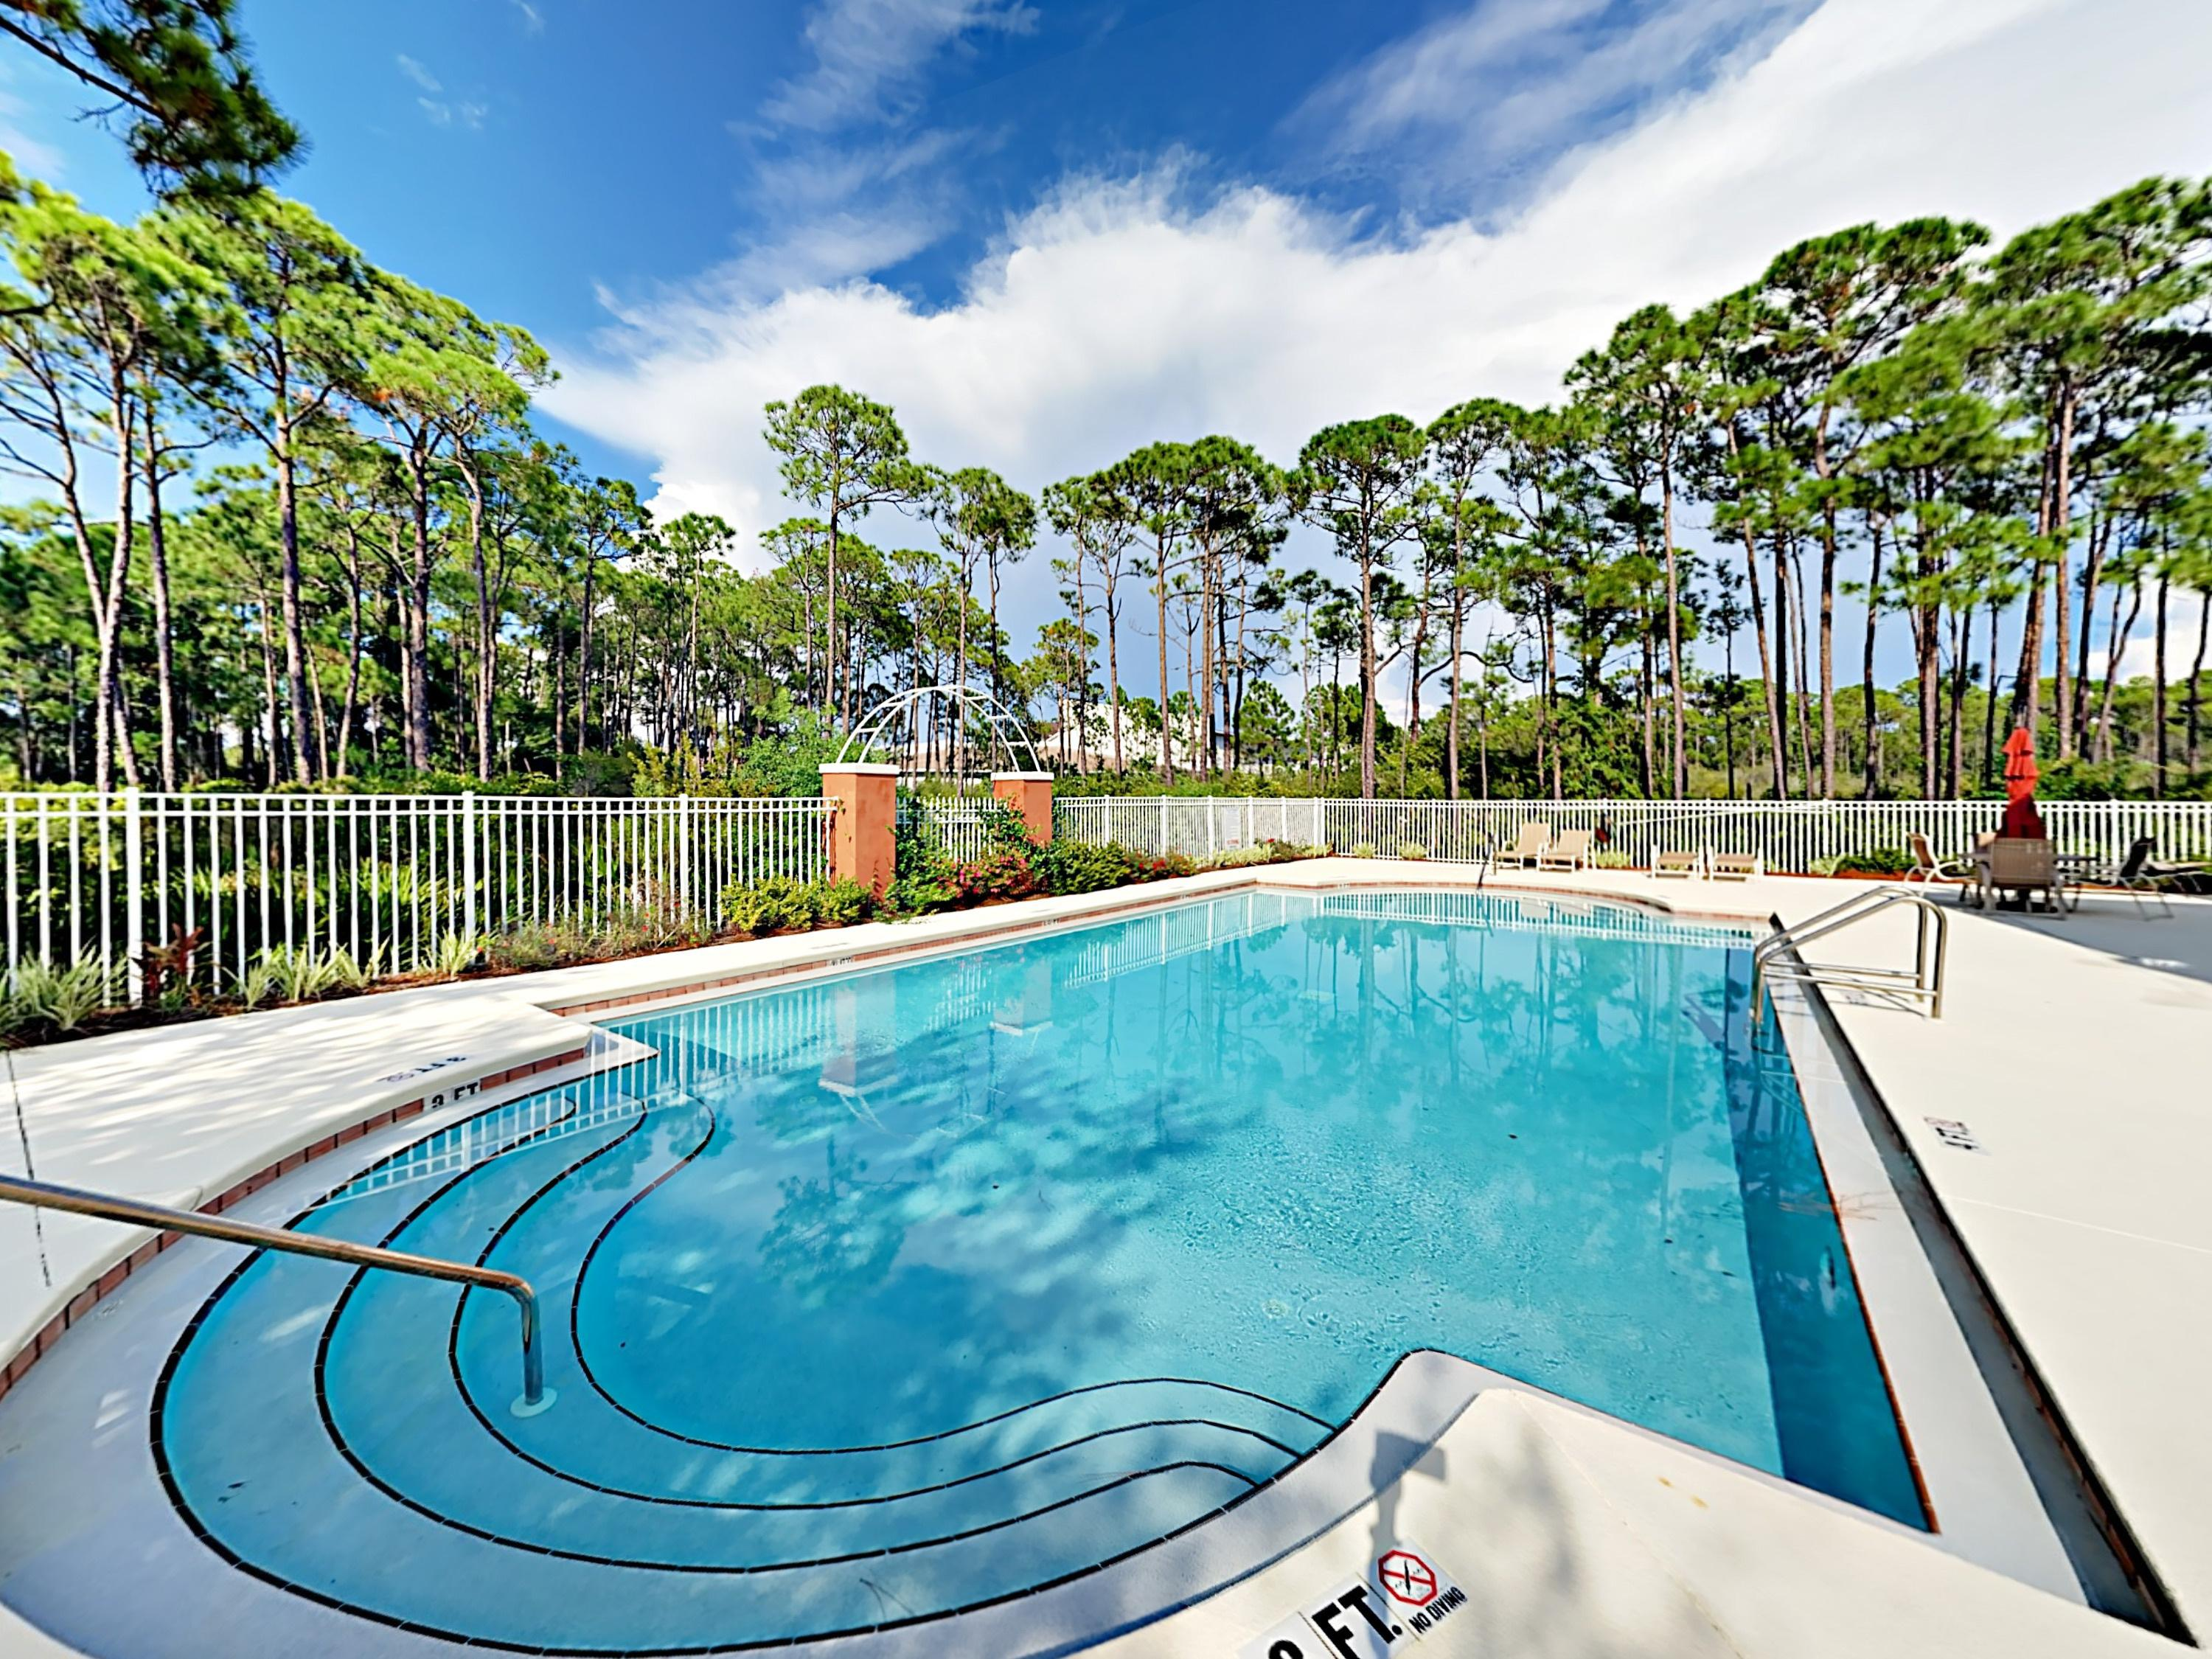 As part of the luxe community of Frangista Beach, your rental includes access to a heated year-round pool.